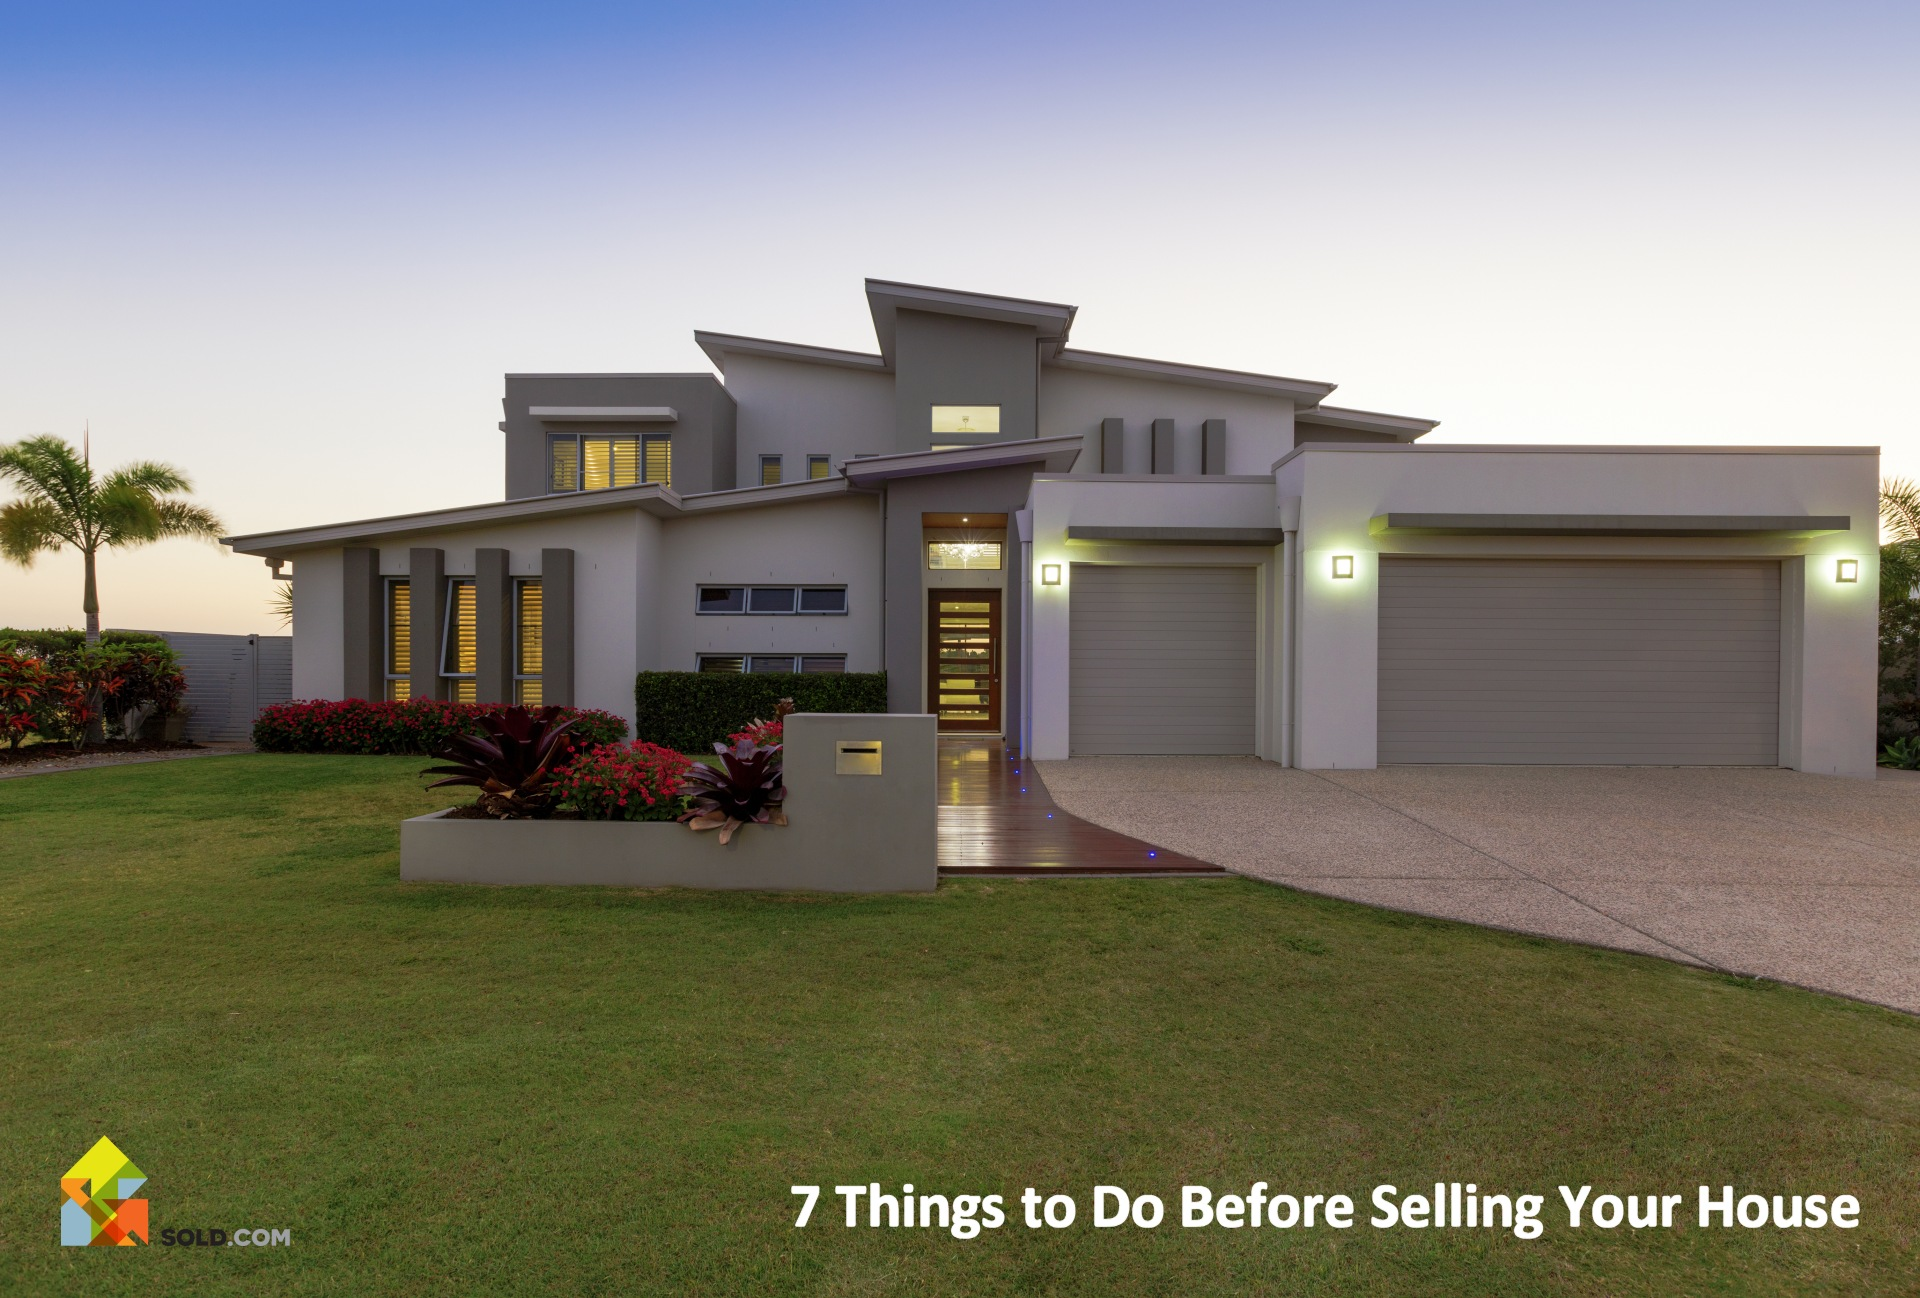 7 Things to Do Before Selling Your House